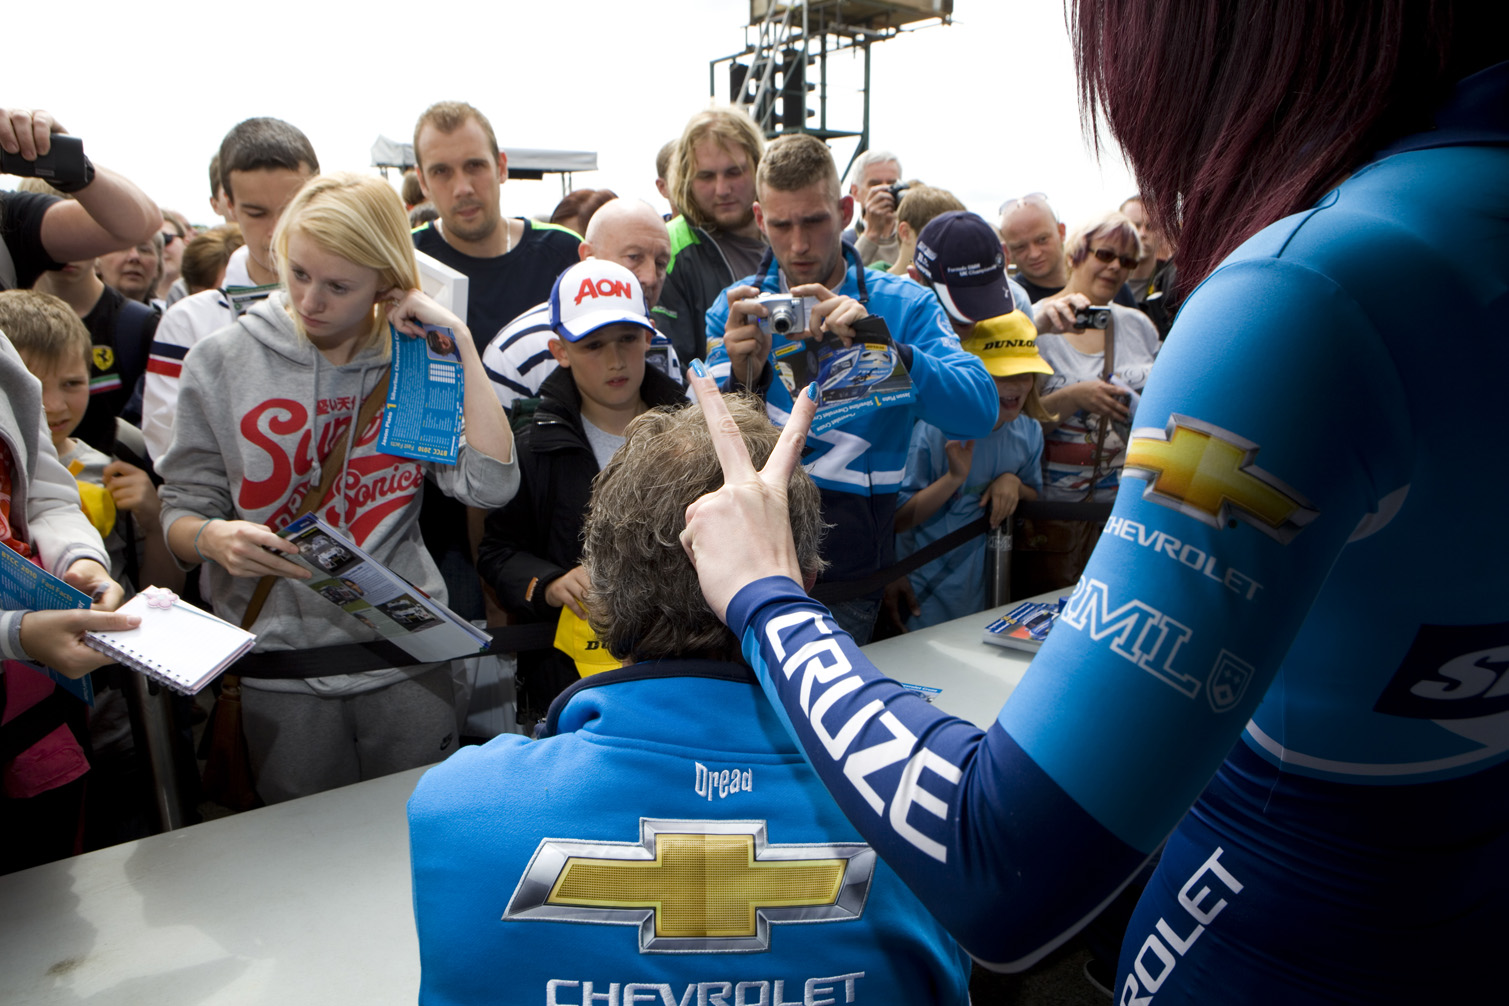 Signs autographs for fans at the Croft Circuit.